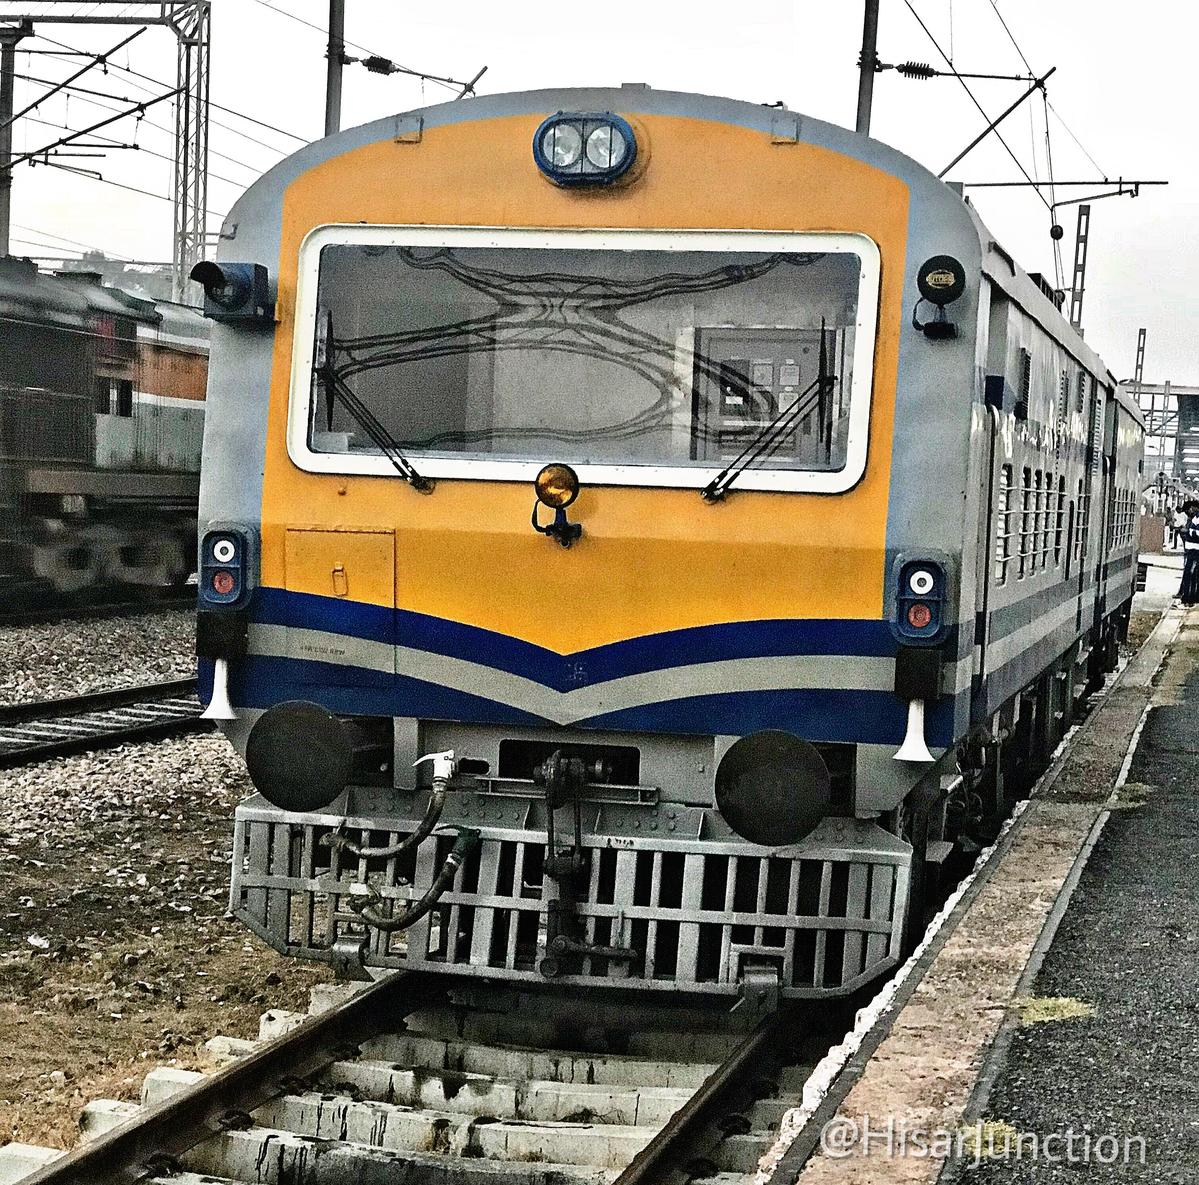 2791407-0: A brand new OHE Inspection Car resting a BNW/BNW/Bhiwani